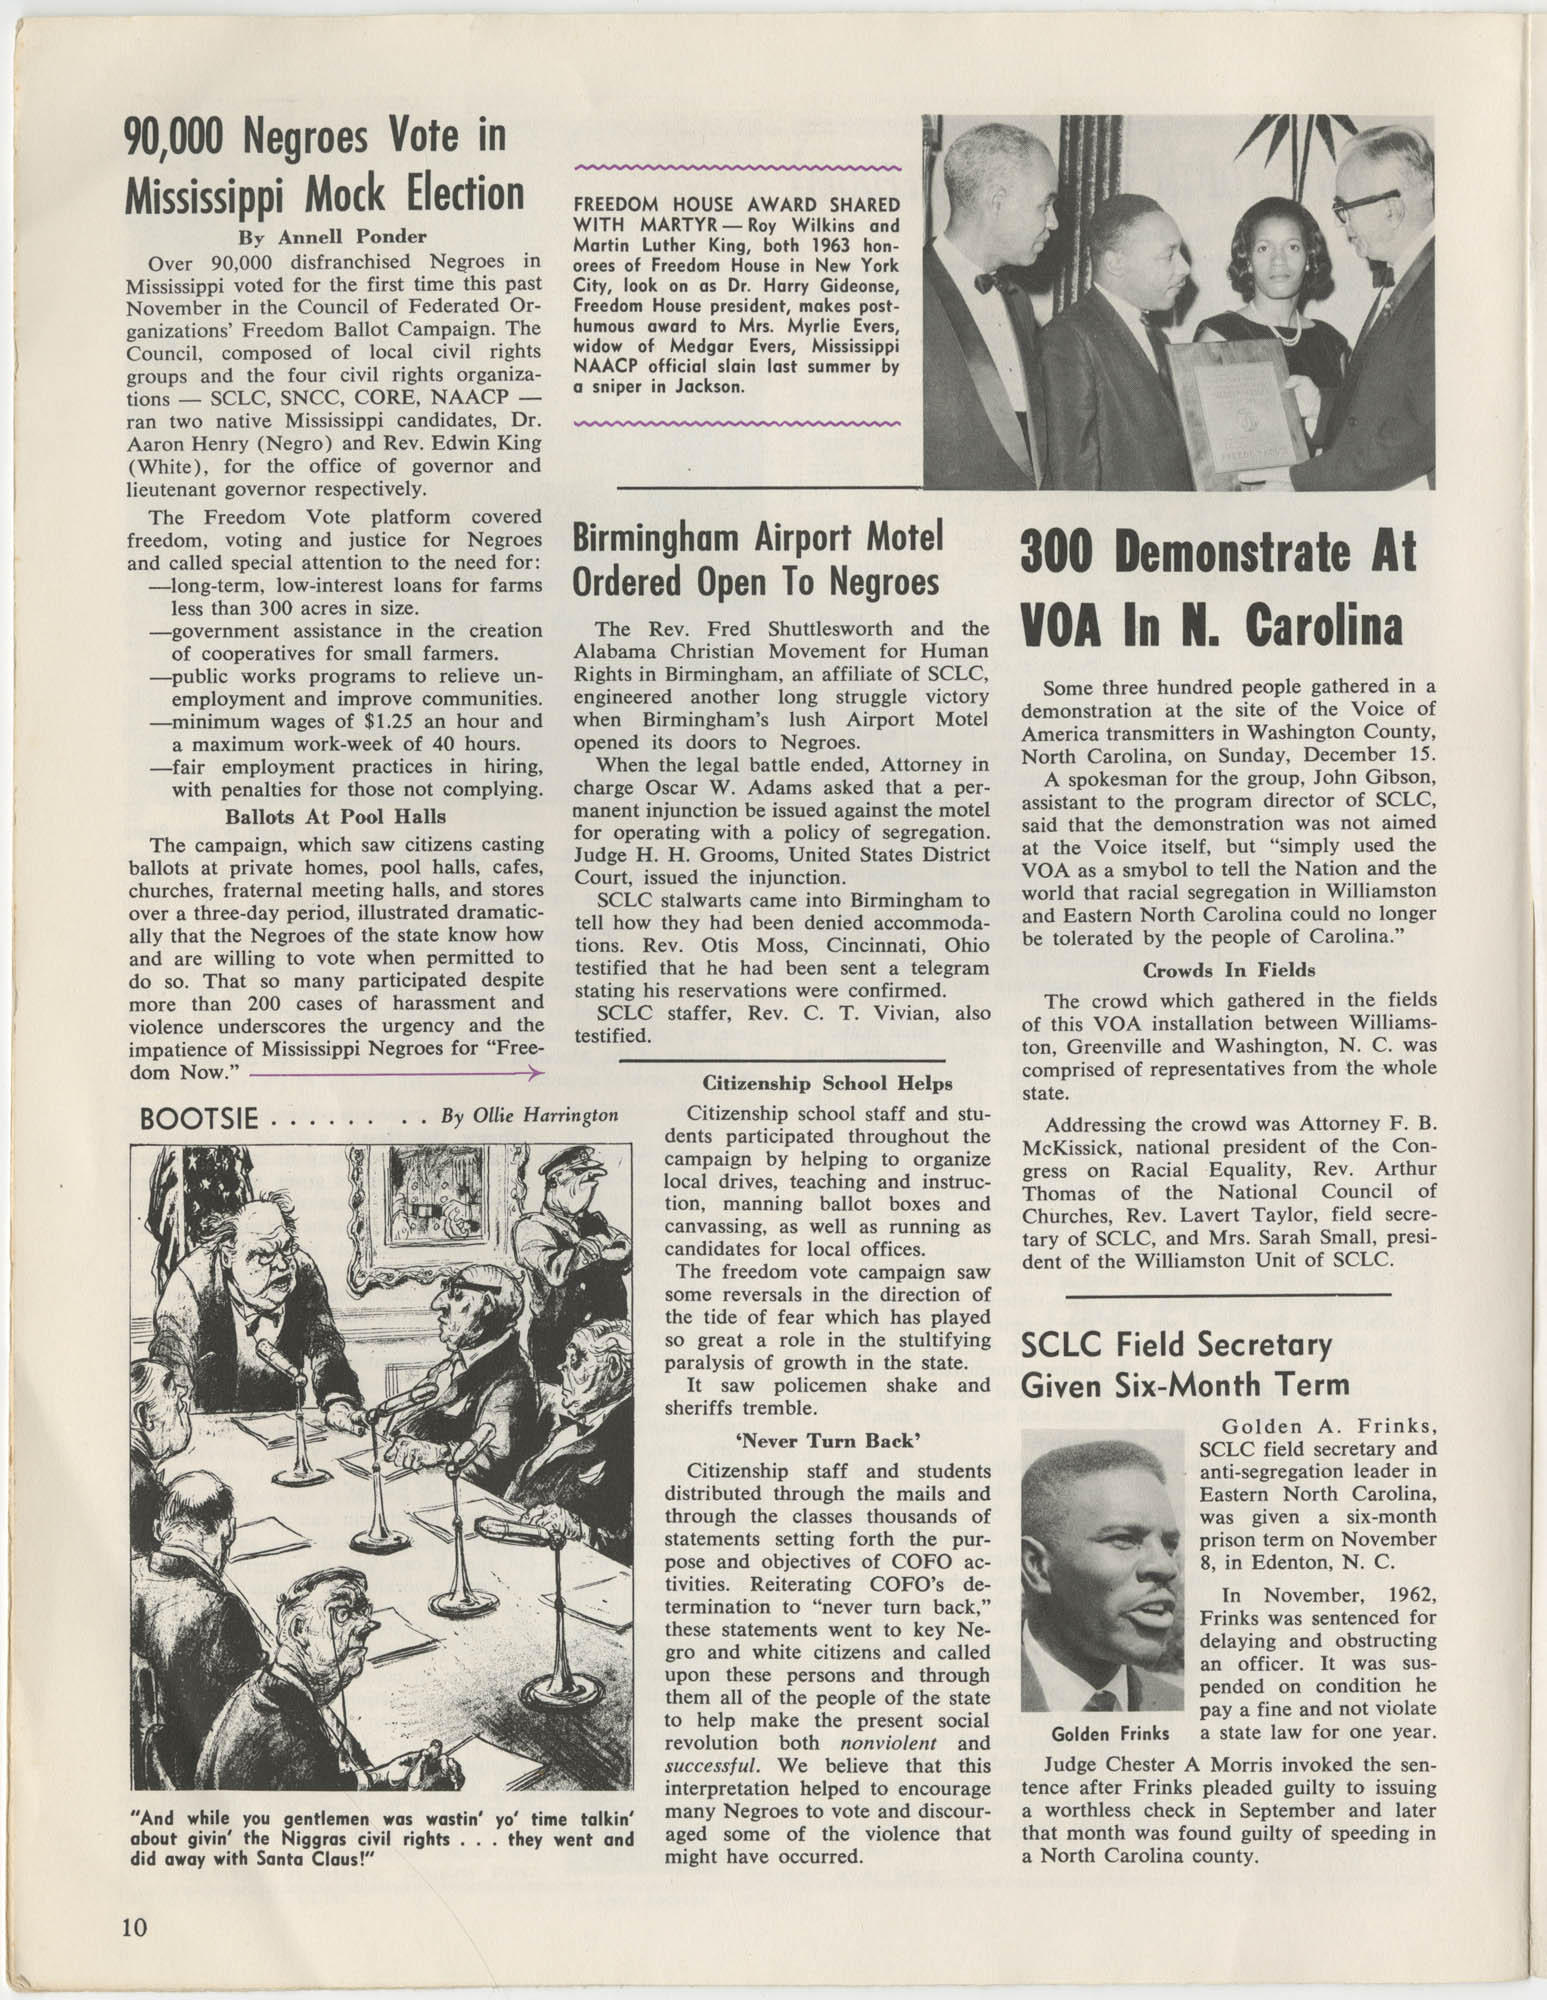 Southern Christian Leadership Conference Newsletter, Volume 2, Number 3, November-December, 1963, Page 10